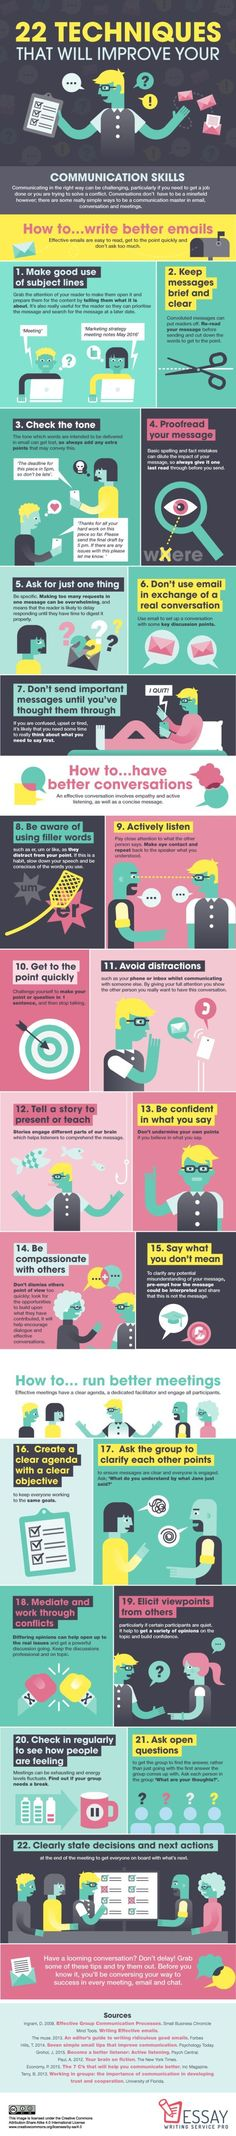 For honing those incredibly important communication skills - Infographic